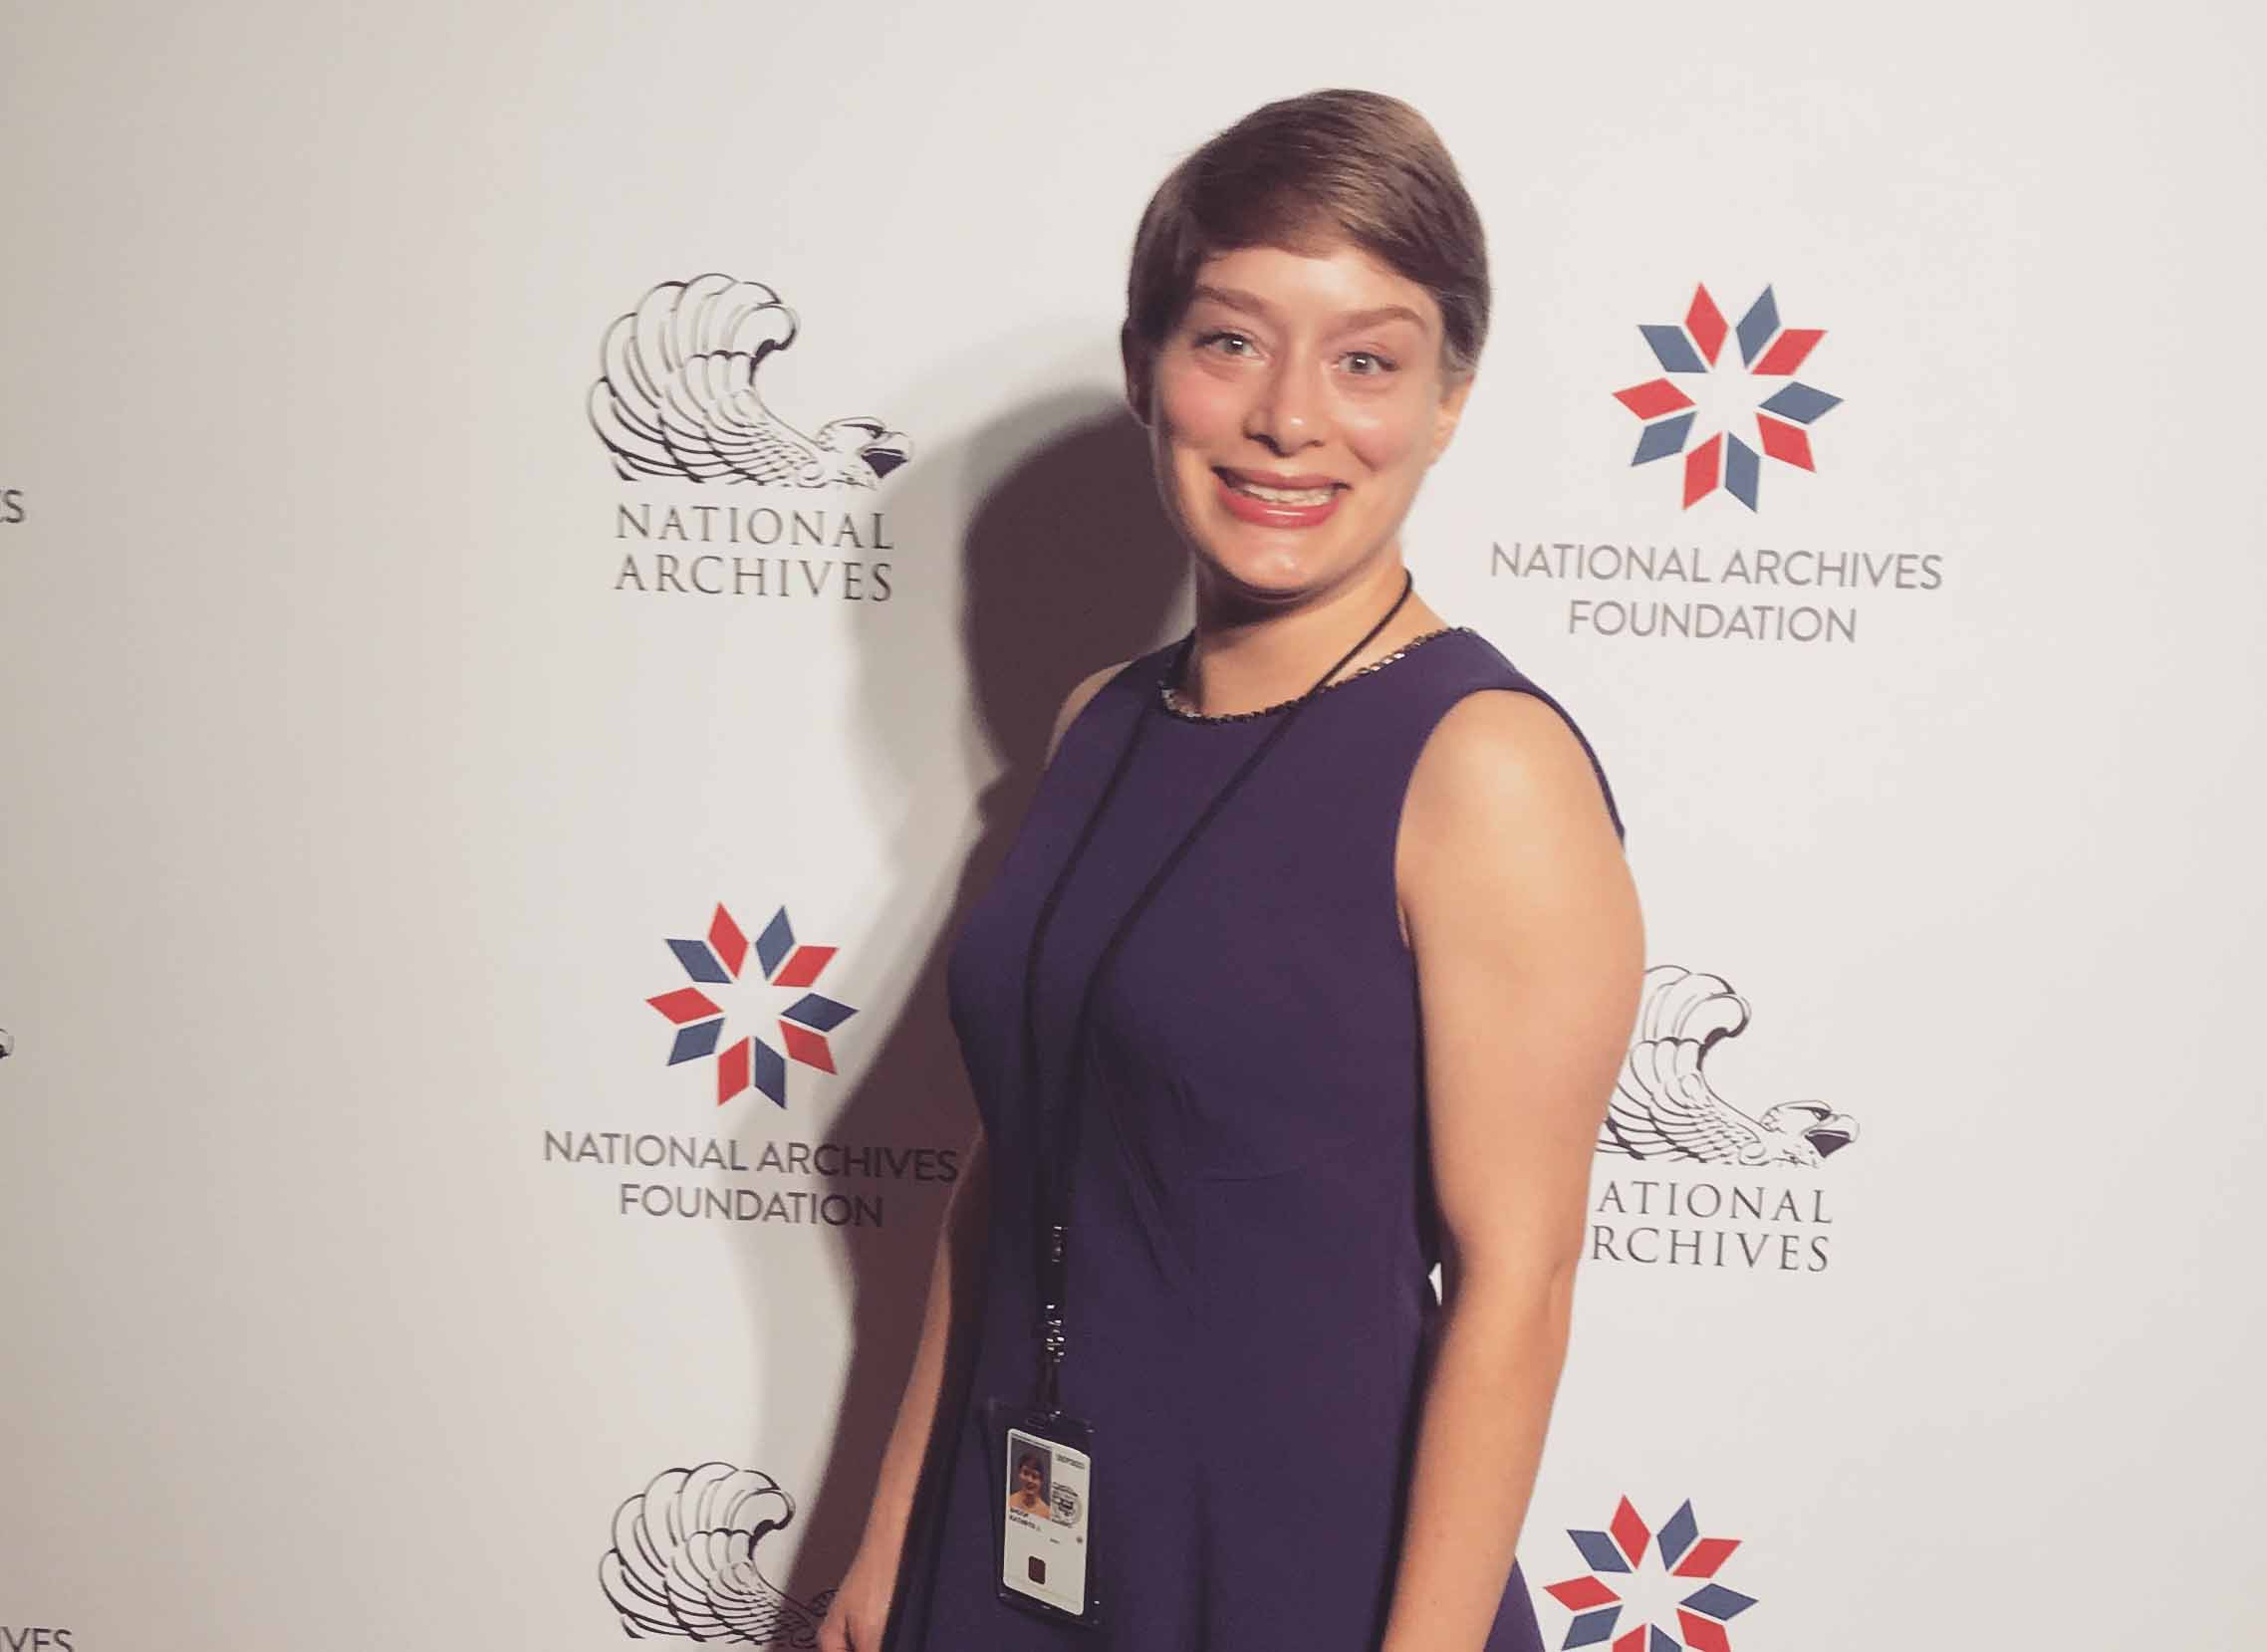 Katy Shoop at National Archives internship